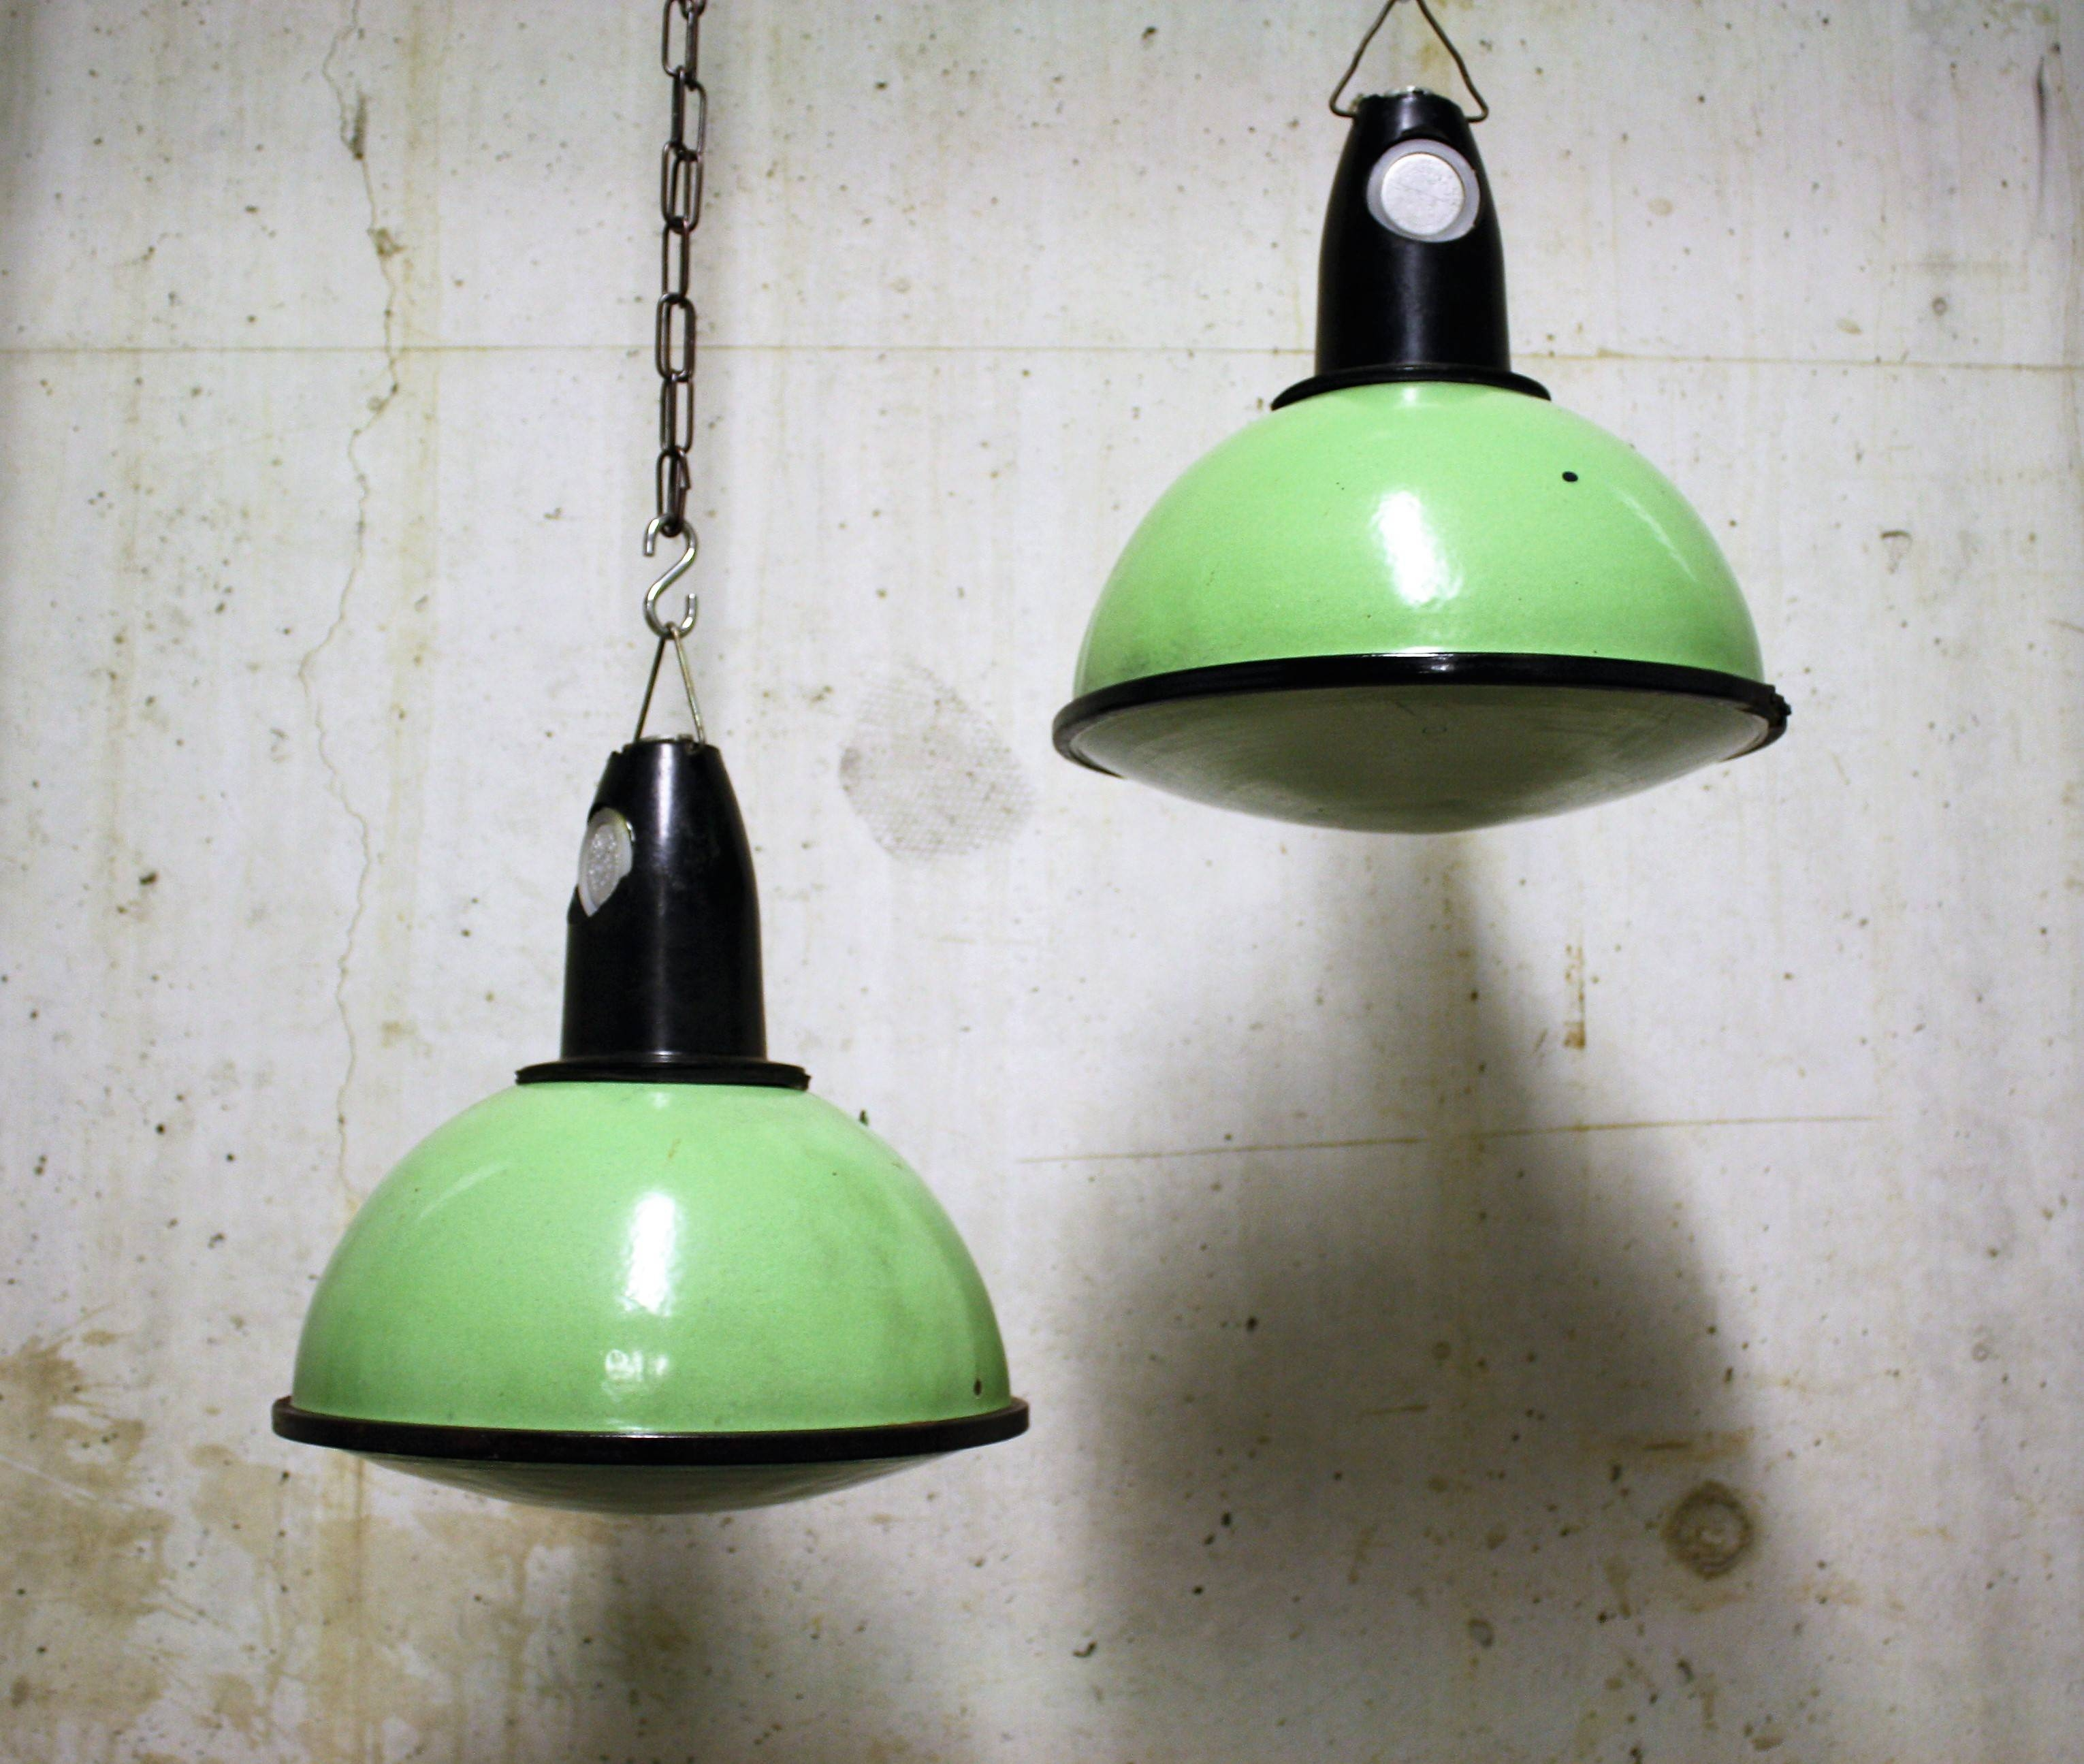 Green Industrial Pendant Lights With Glass 1960S (6Pcs) | Vinterior throughout 1960S Pendant Lights (Image 5 of 15)